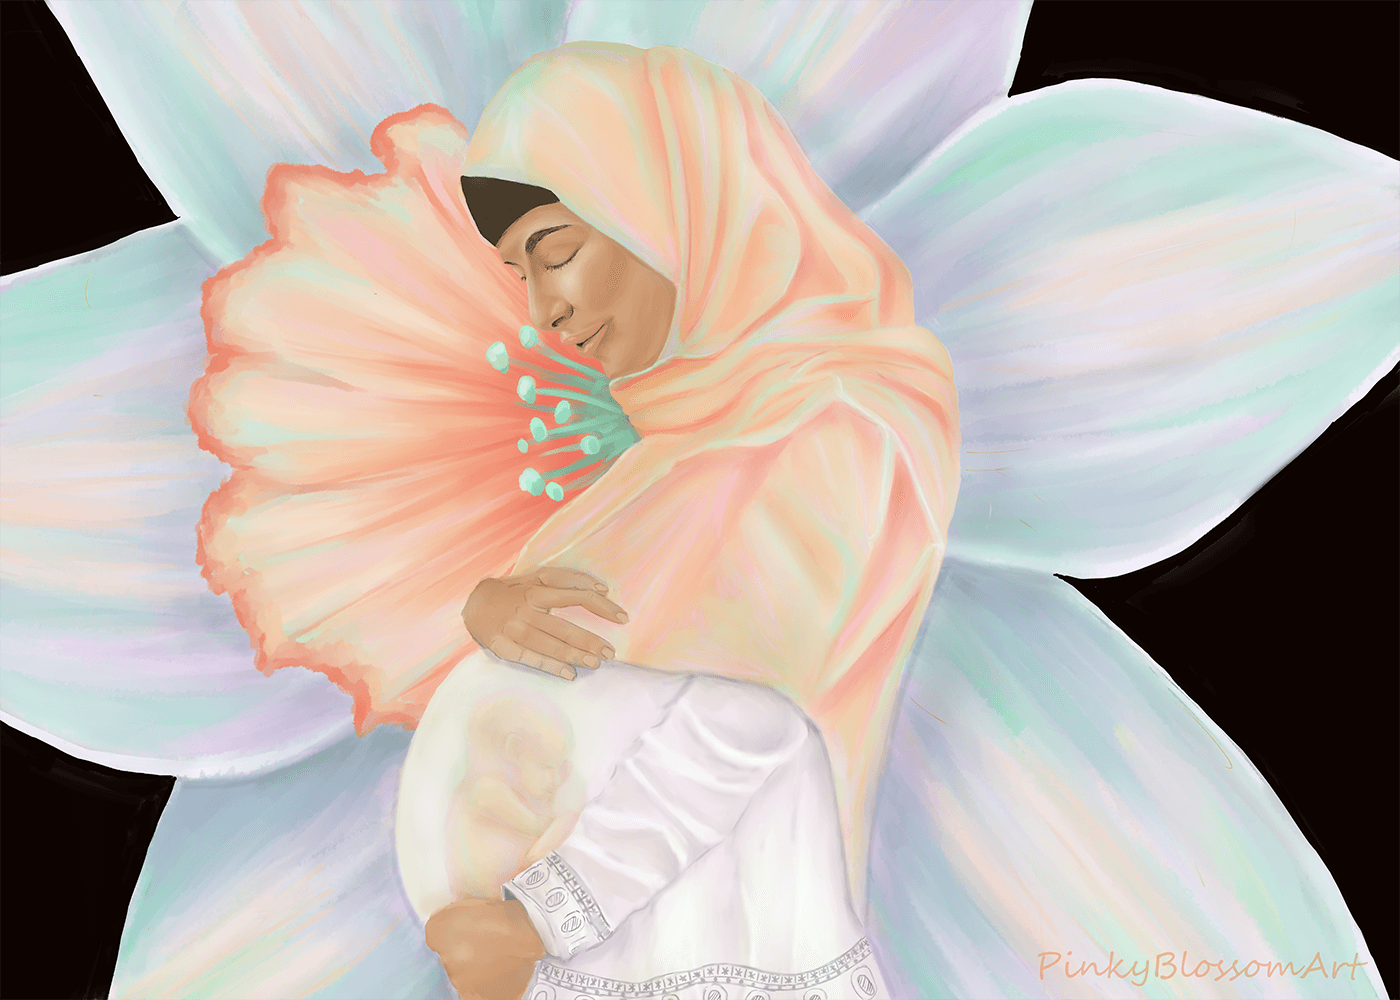 a painting of a woman with brown skin who is wearing a head scarf and a white dress. She is looking down at her pregnant belly